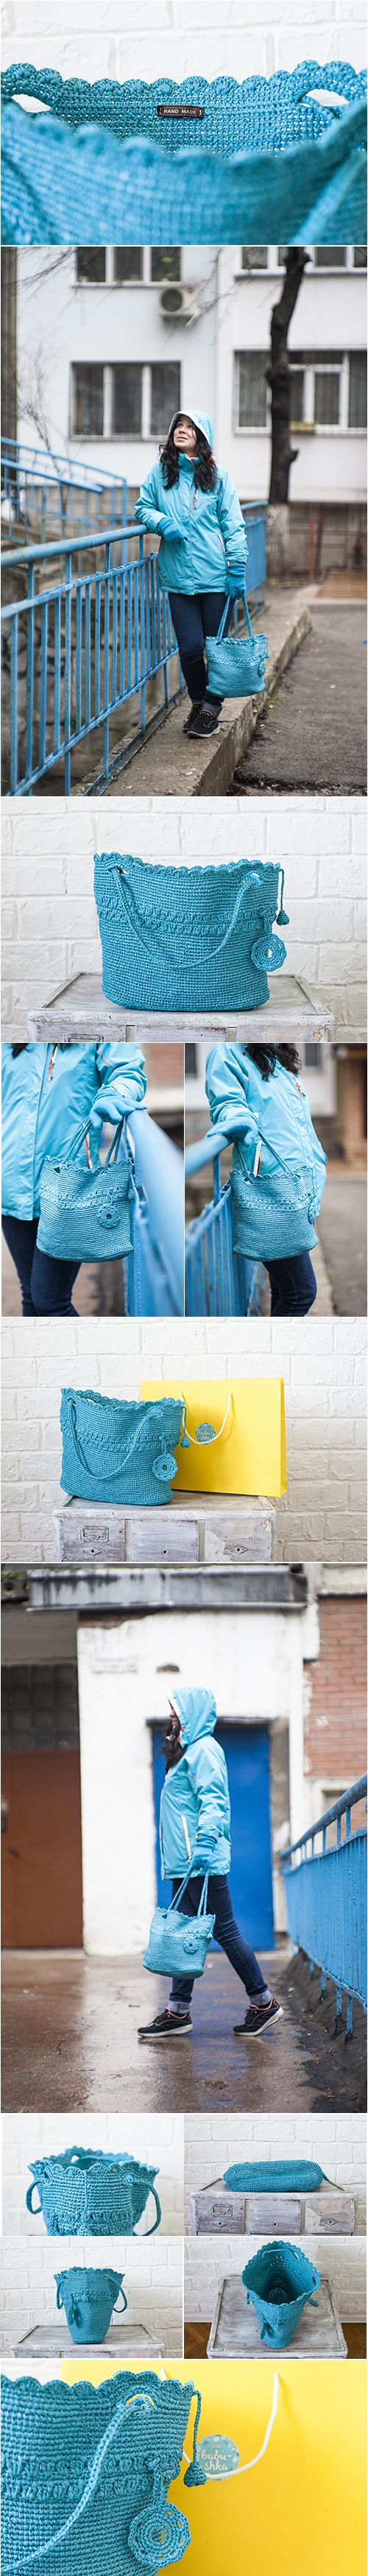 Plarn Tote Bag, Eco friendly Upcycled, Plastic Yarn Tote Bag, Blue, OOAK Bag, Handbag Plarn Tote Bag, Crochet Tote,Recycle Plarn Tote